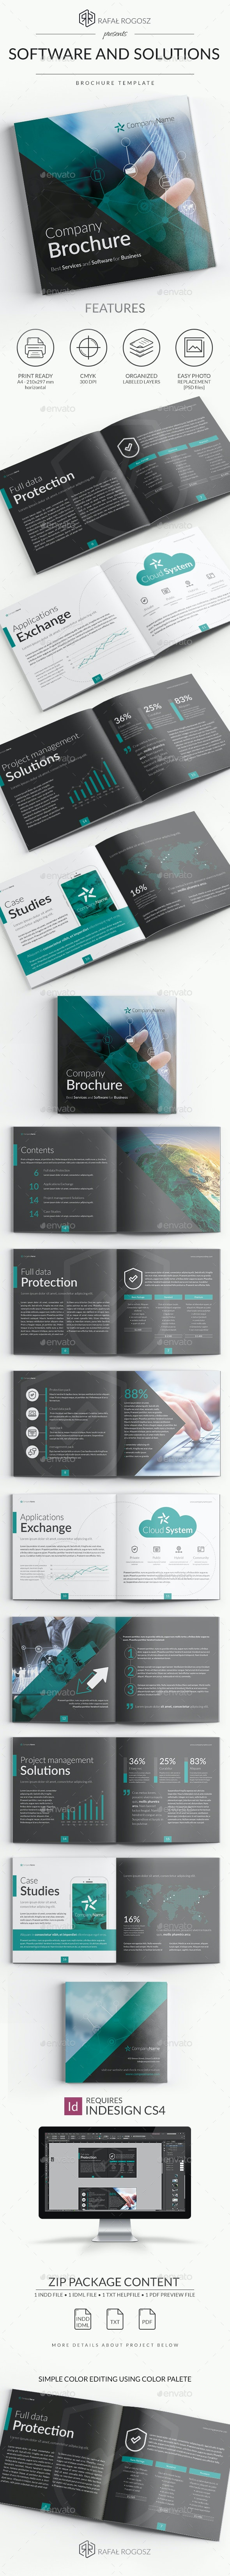 Software and Solutions Brochure - Brochures Print Templates